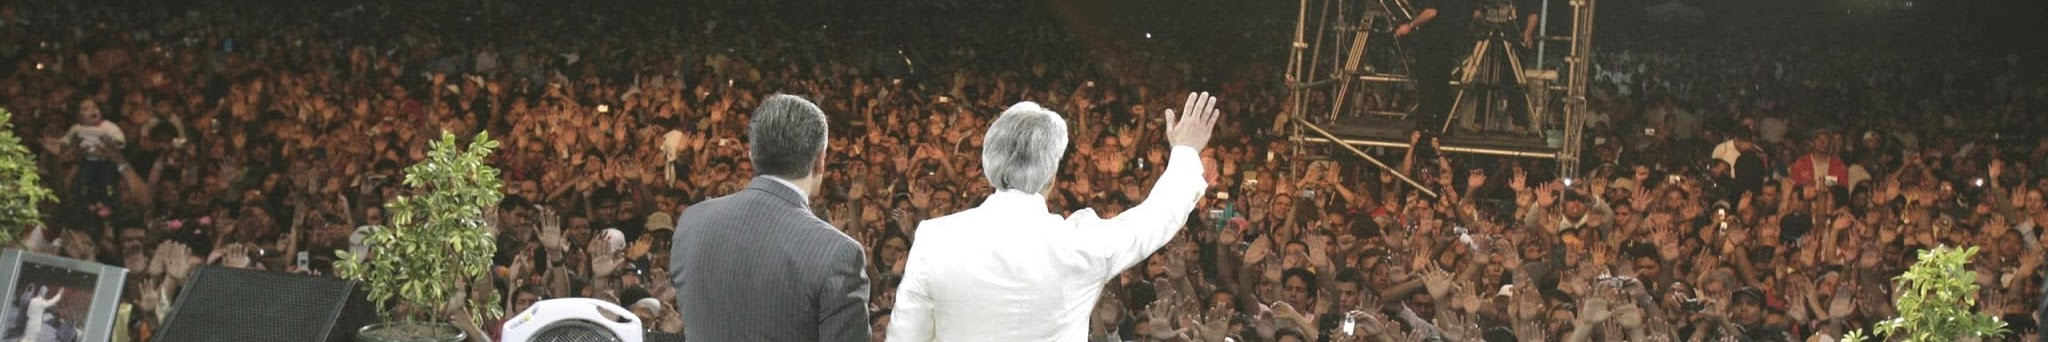 JOSHUA GOLDEN EMINENT: Benny Hinn Youtube Channel